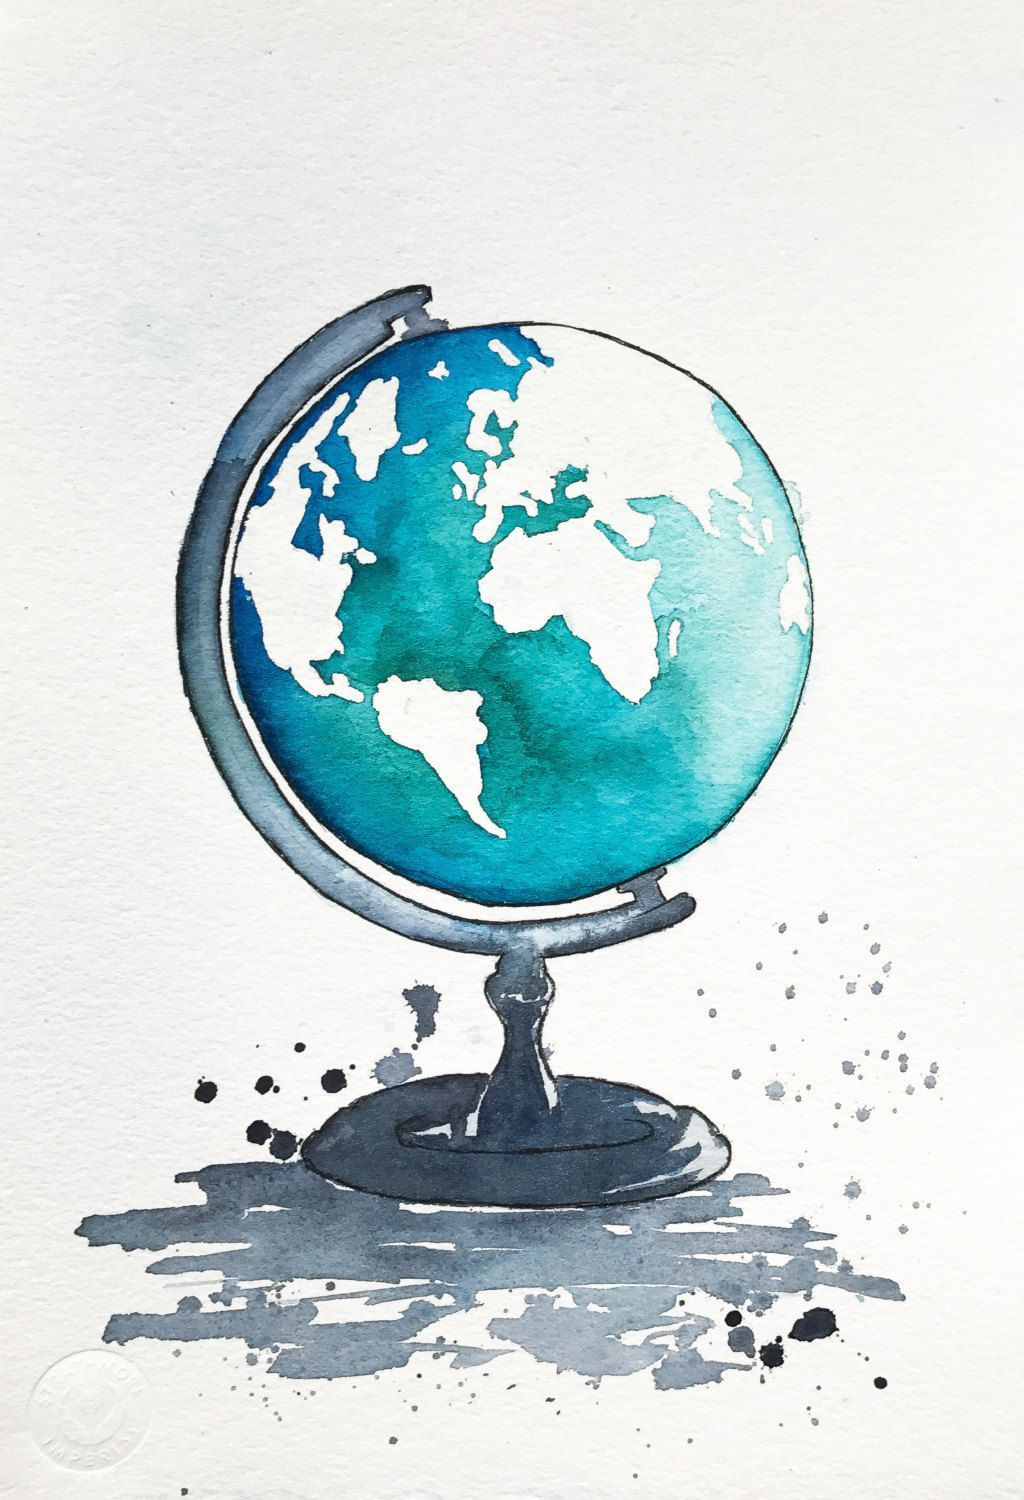 Original world map watercolor painting globe illustration travel original world map watercolor painting globe illustration travel illustrator modern wall art home decor handmade holiday gift 75 x 11 by nik gumiabroncs Gallery